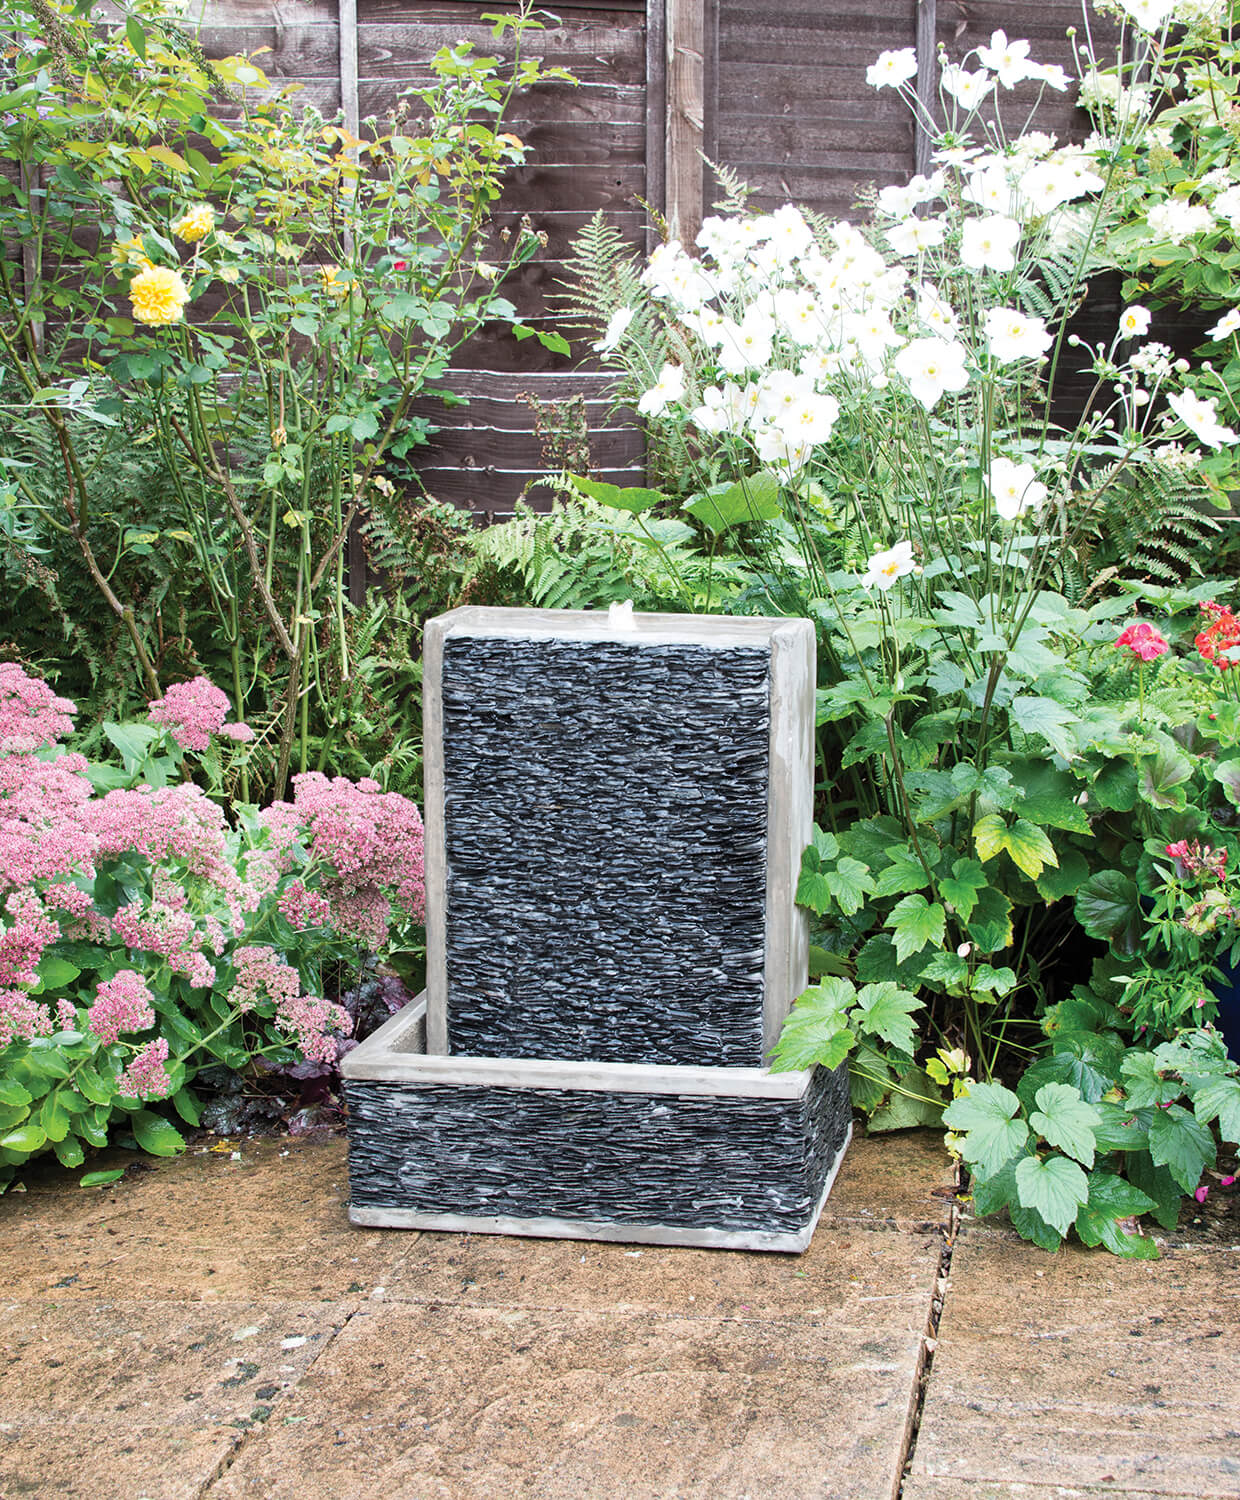 Woodlodge Harbour Slate Wall Water Feature 163 185 24